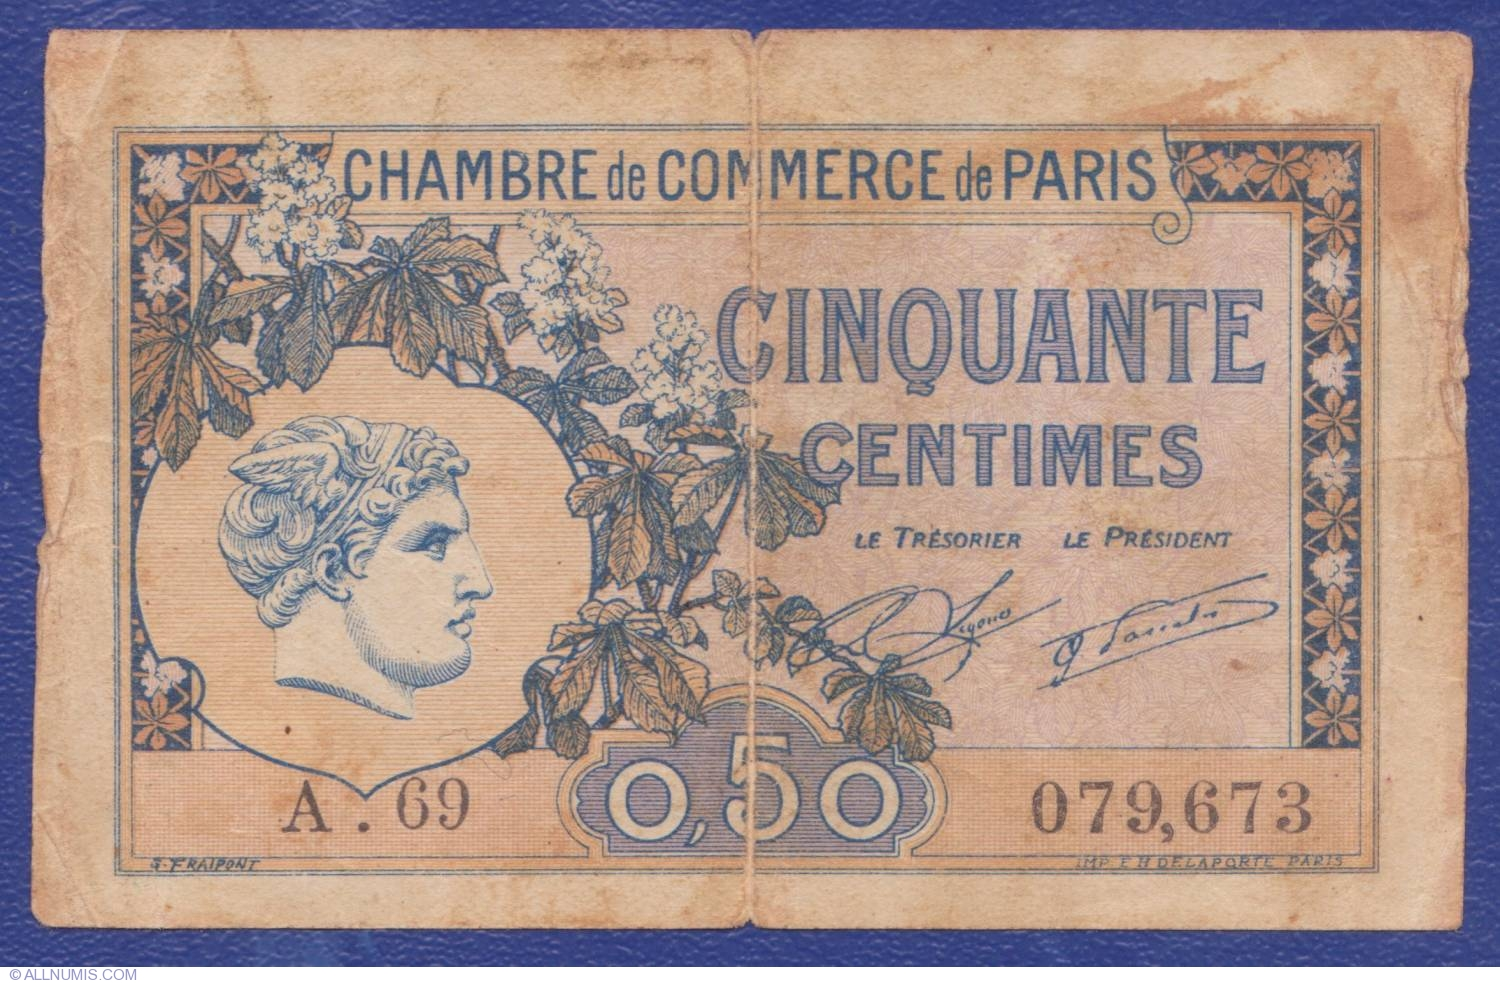 50 centimes 1920 paris chambre de commerce france for Chambre commerce international paris